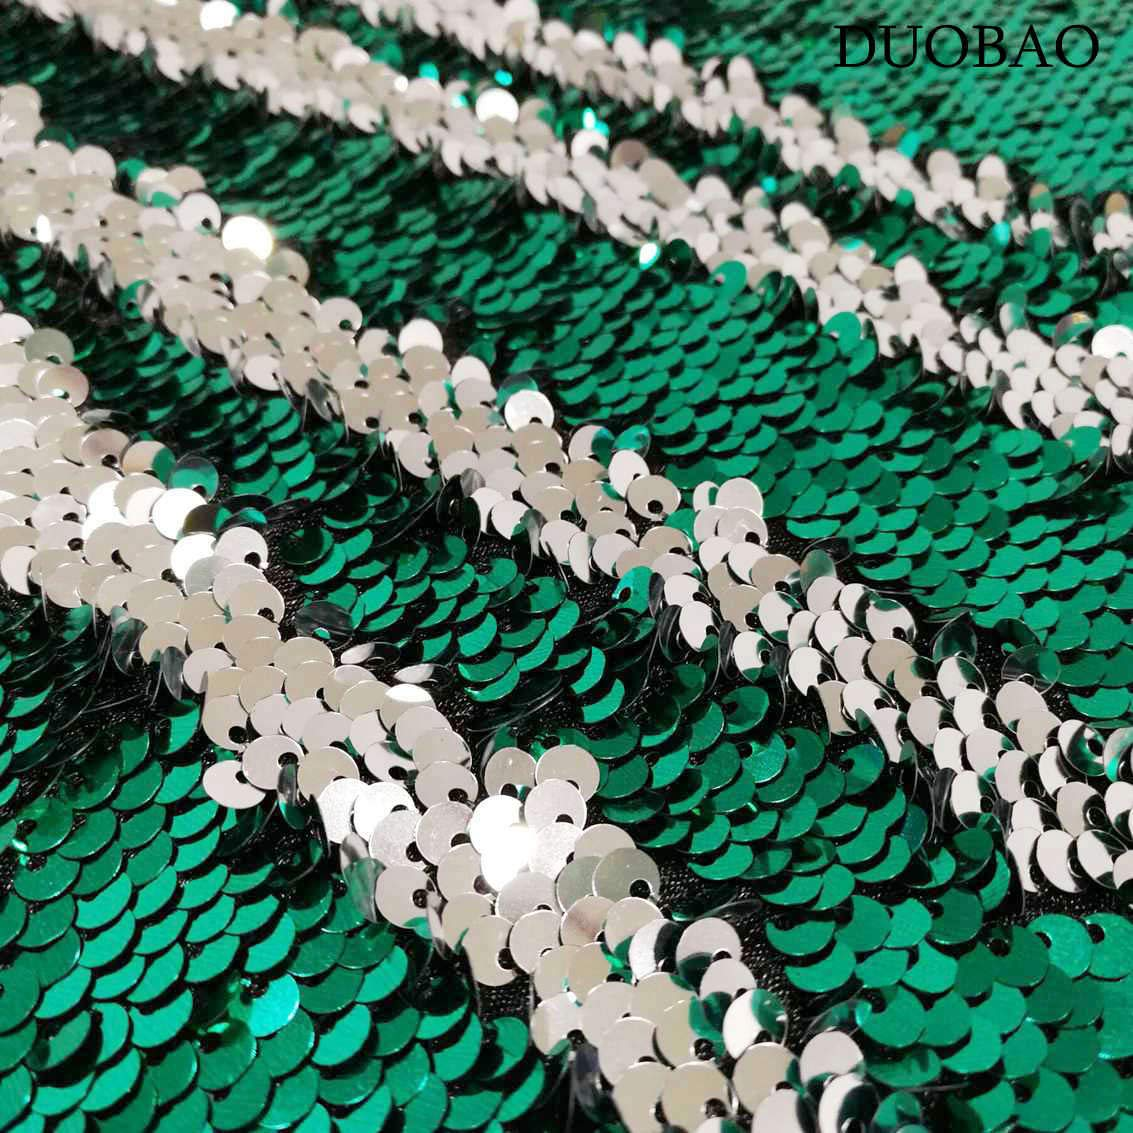 DUOBAO Sequin Backdrop 8Ft Green to Silver Rerversble Glitter Backdrop 4FTx8FT Mermaid Sequin Backdrop for Photo Booth Wedding Ceremony Backdrop by DUOBAO (Image #5)